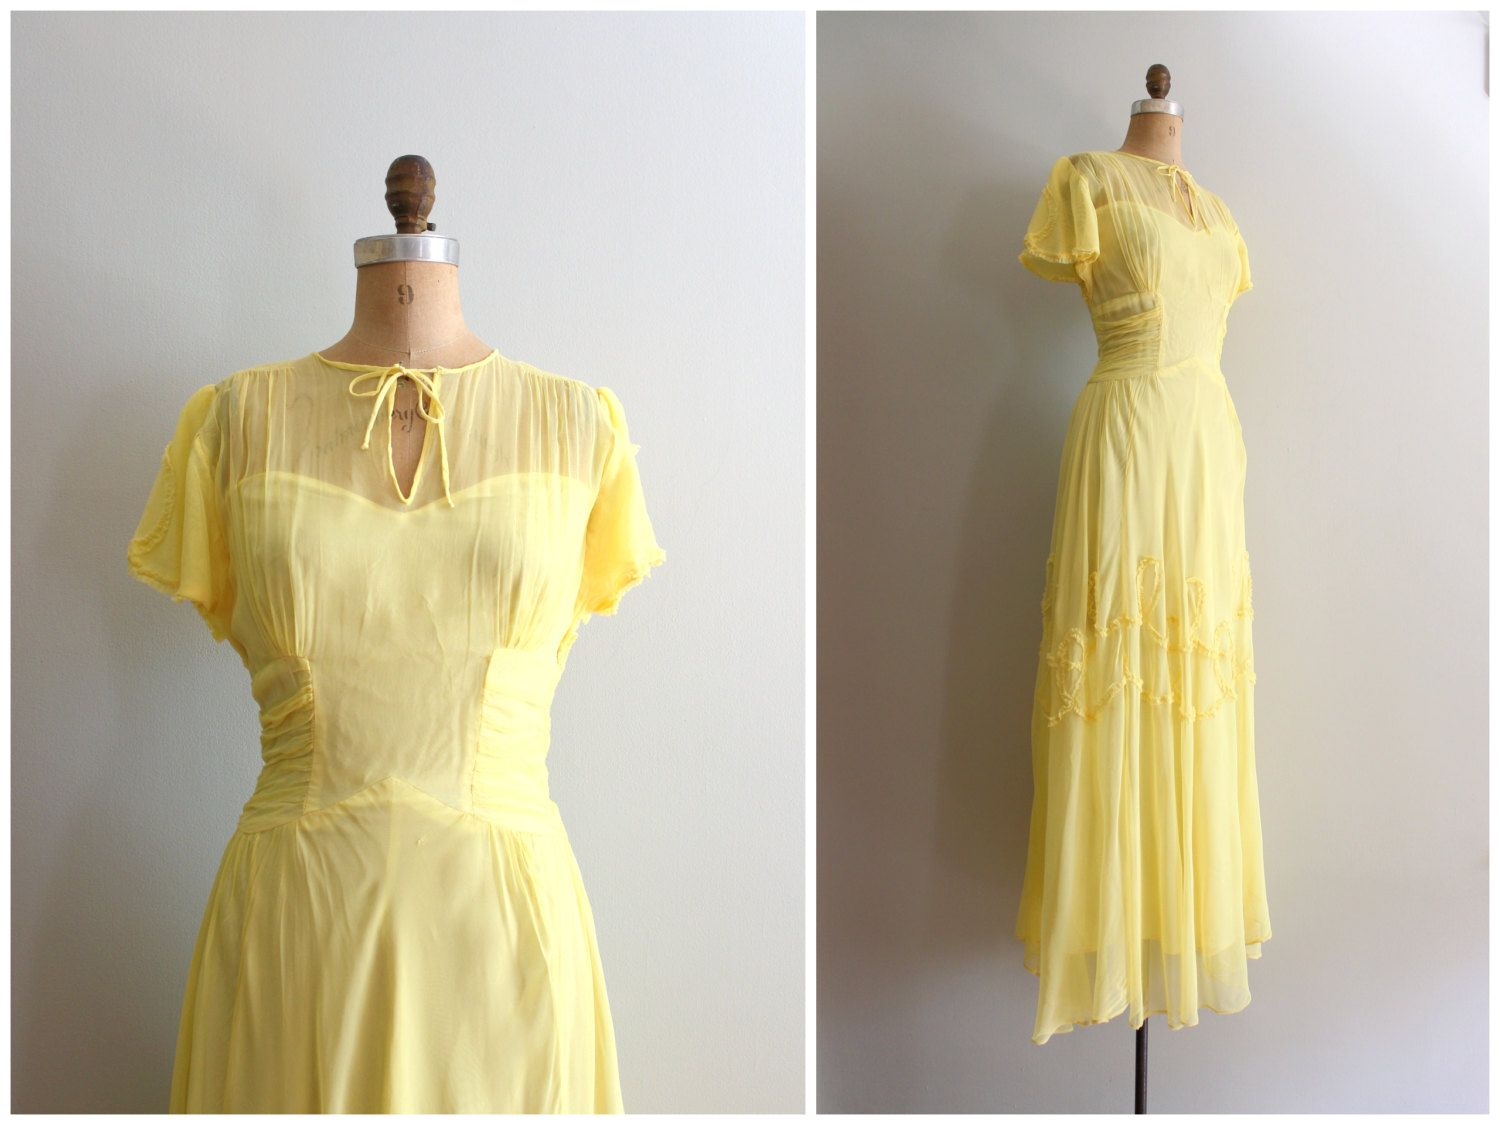 Pale Yellow 1940s Party Dress Vintage 40s Sheer Rayon Gown Etsy Chiffon Summer Dress Belle Dress Party Dress [ 1125 x 1500 Pixel ]